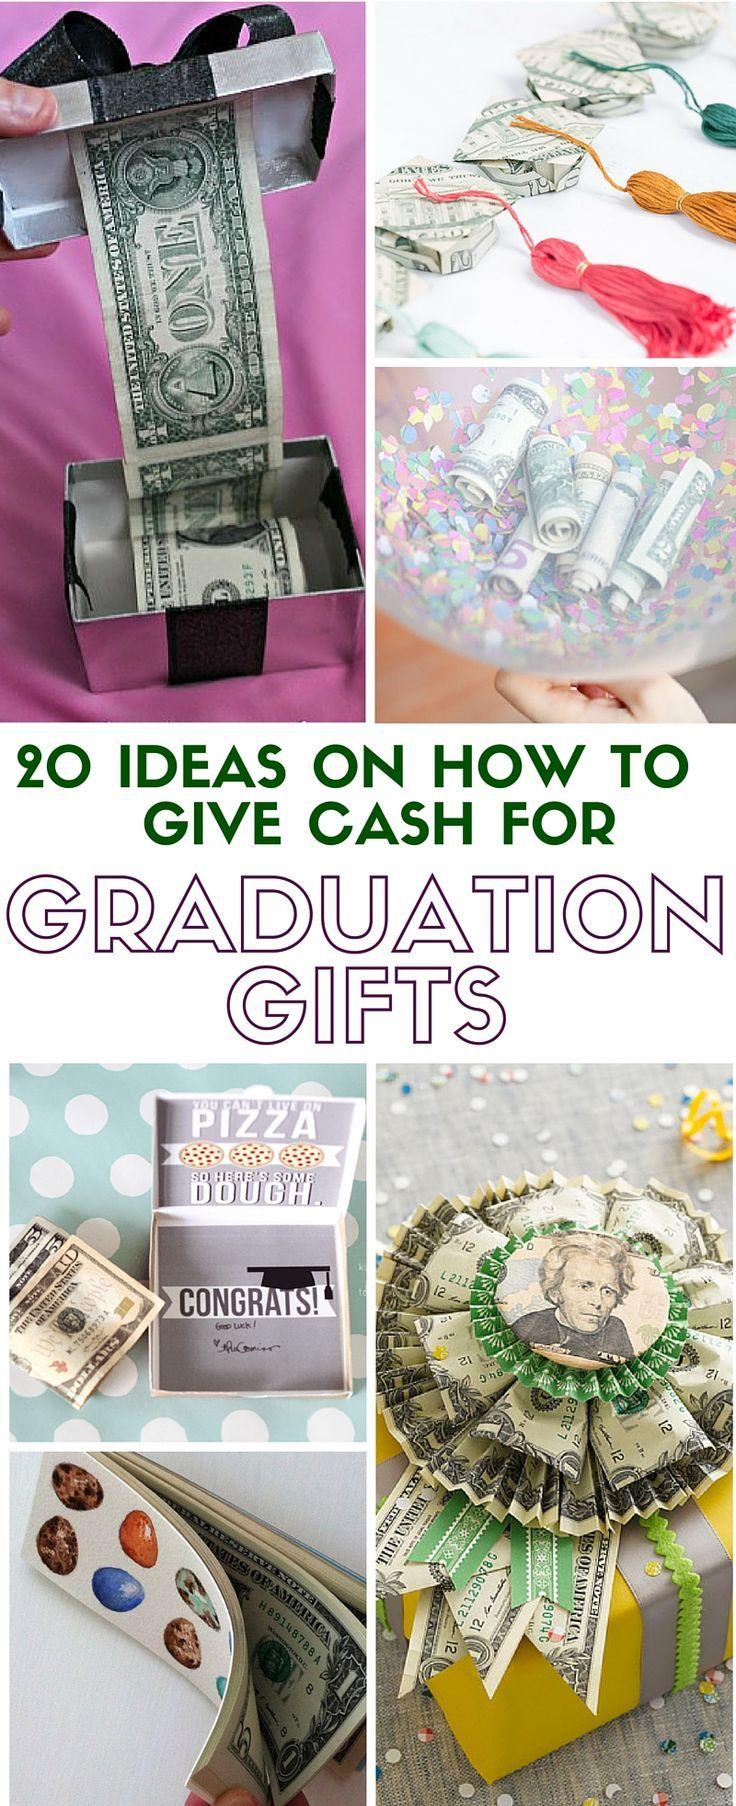 20 ideas on how to give cash for graduation gift high